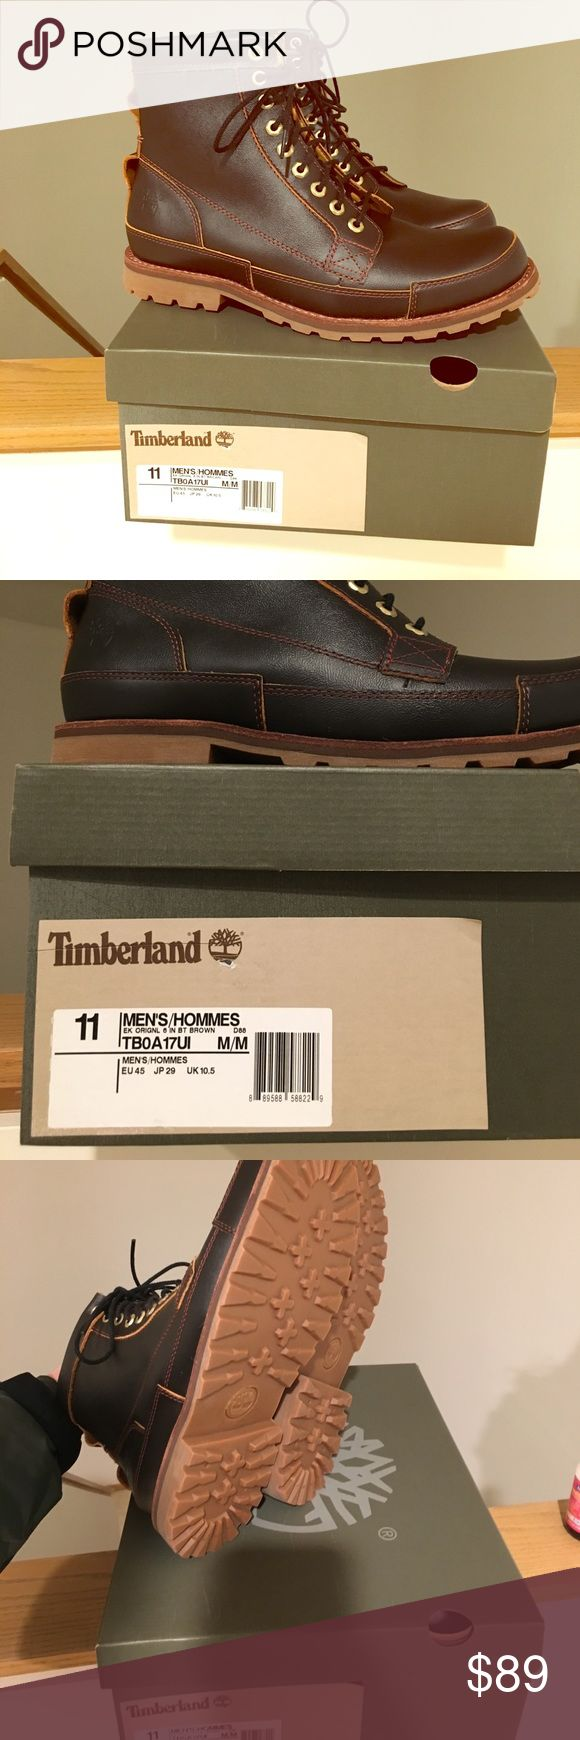 New brown Timberland boots, size 11 Men's size 11 brown timberland boots, new in box. Pic lighting difficult to show the actual color - they are brown not black. Retail $170!! Timberland Shoes Boots